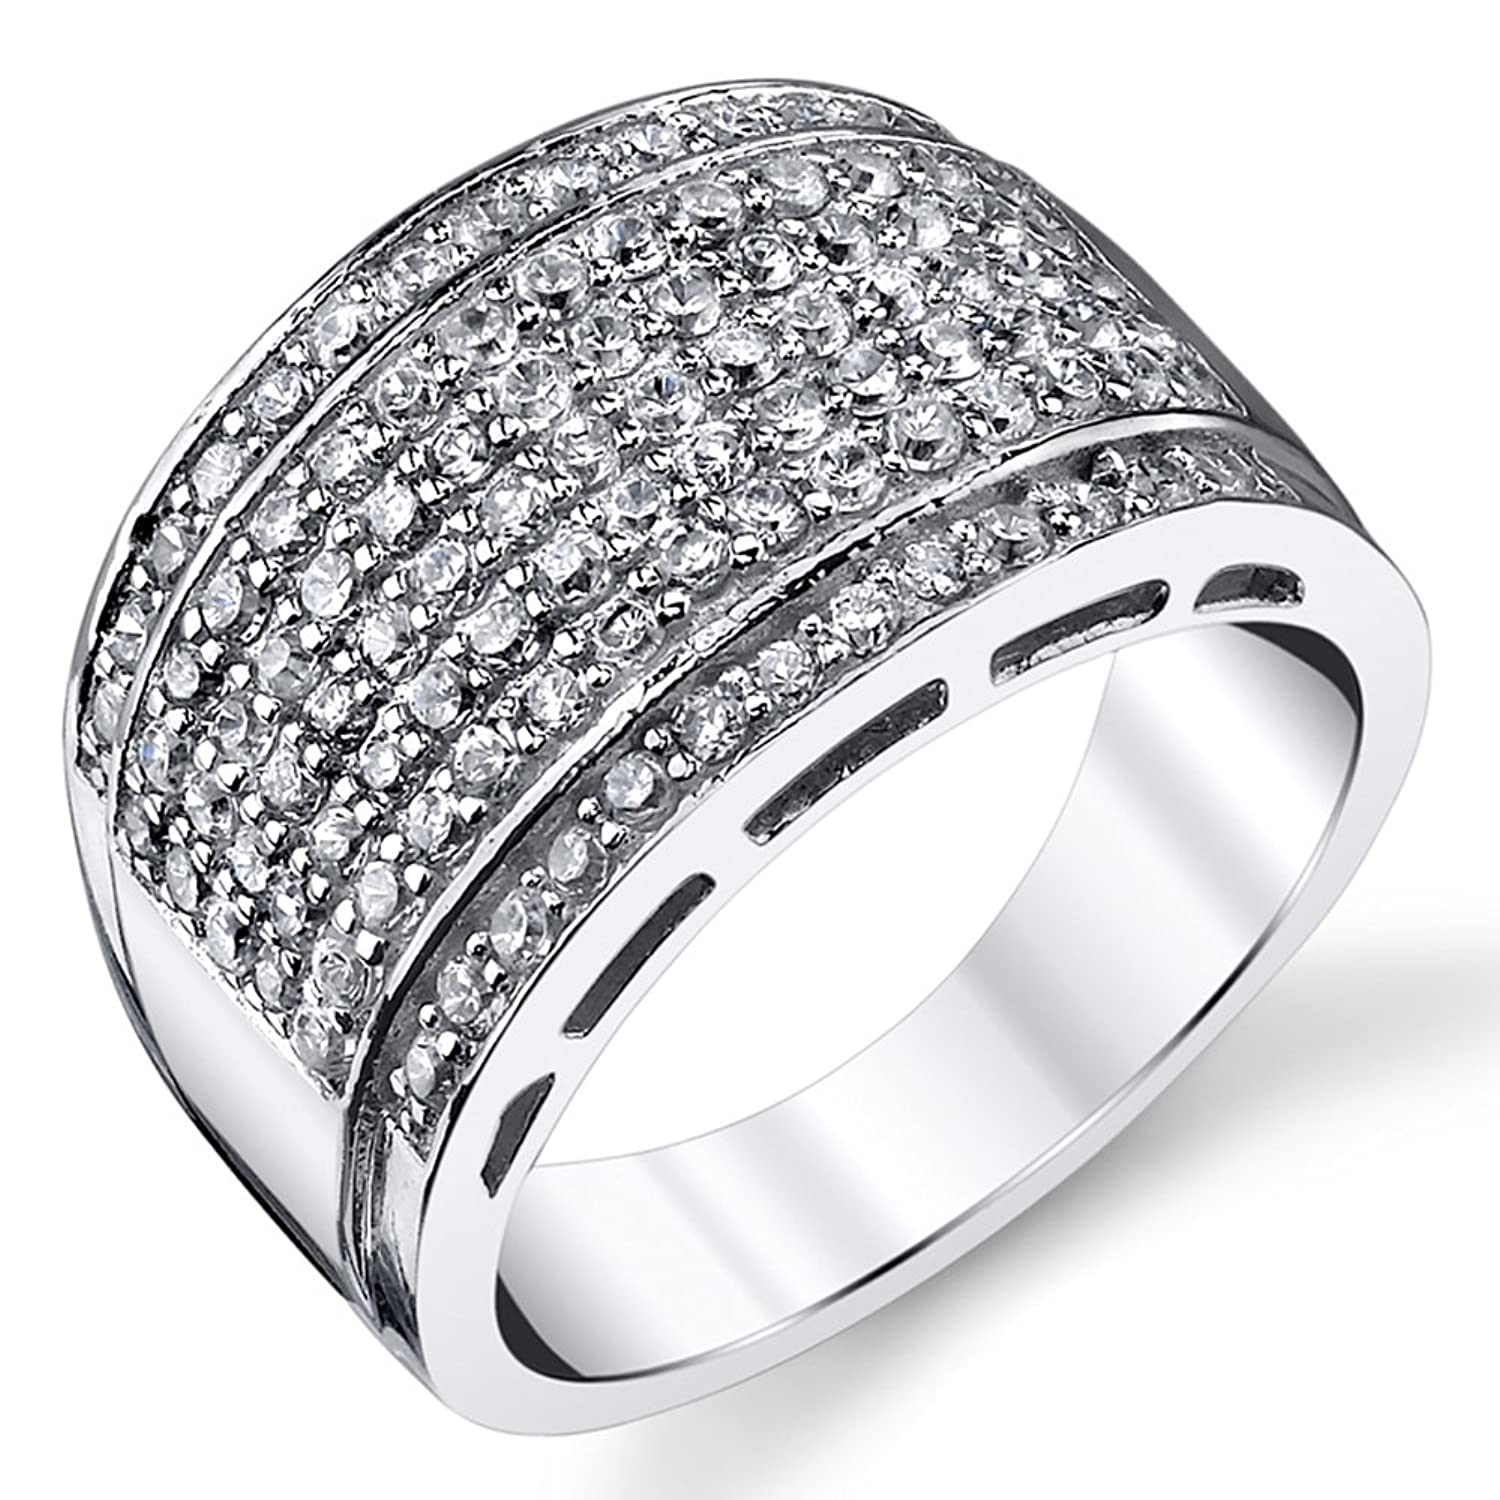 rings main bands sylvie product band wedding diamond pave